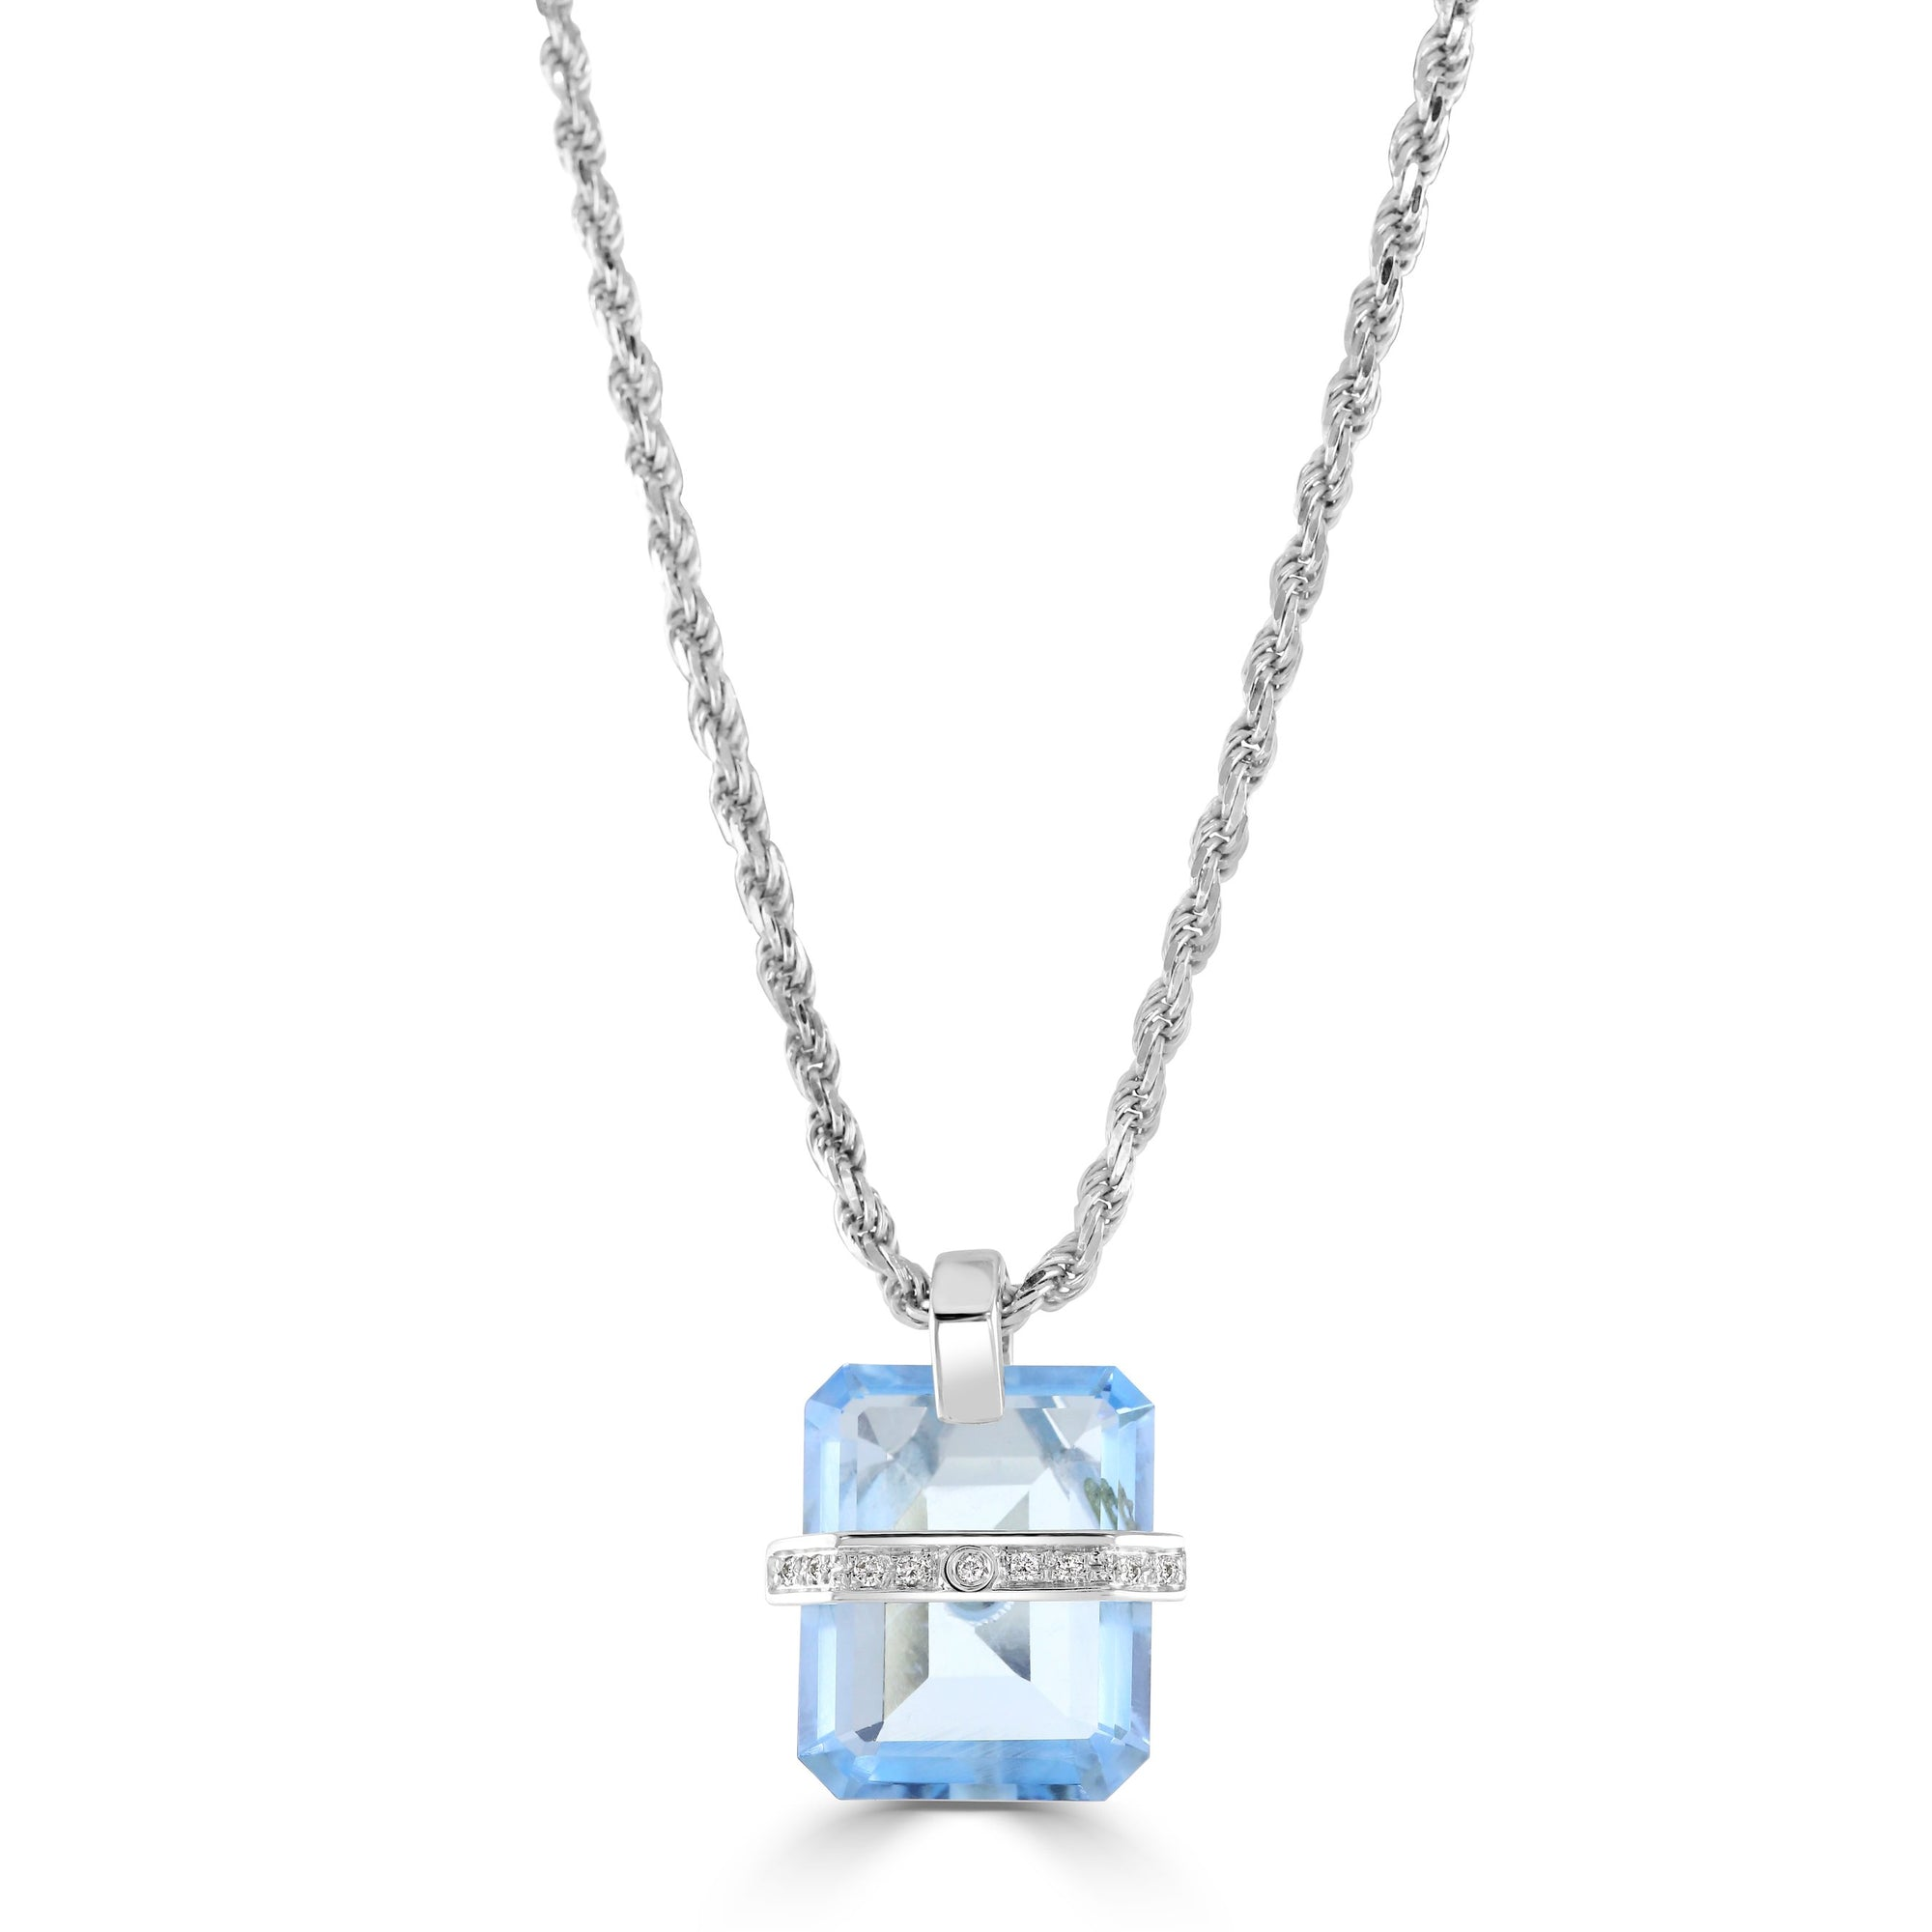 18ct White Gold Topaz and Diamond Pendant